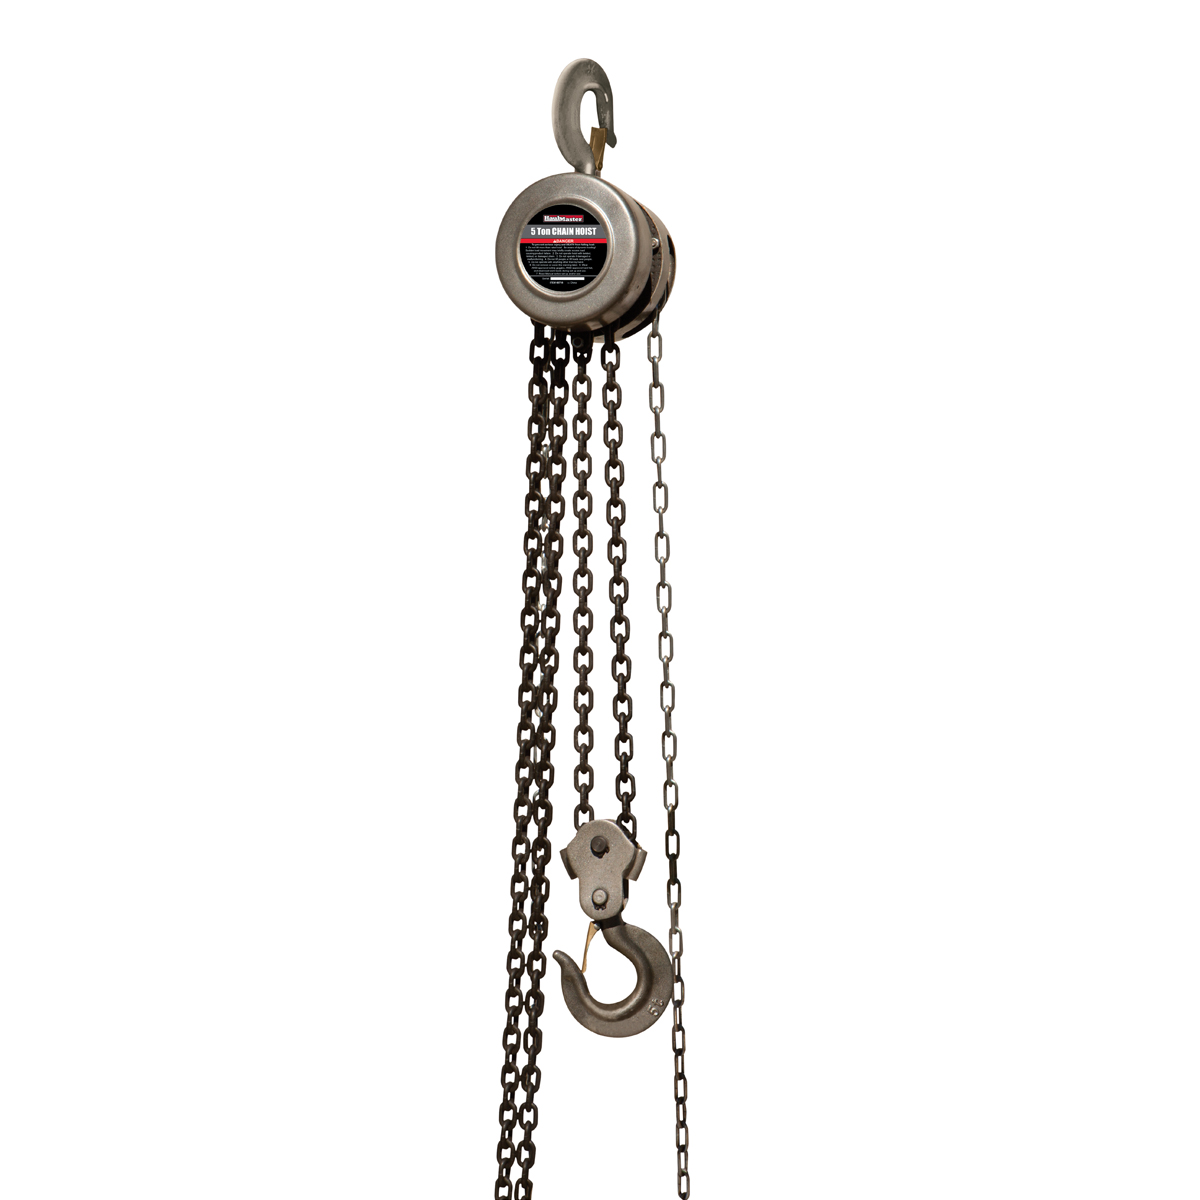 5 ton Manual Chain Hoist